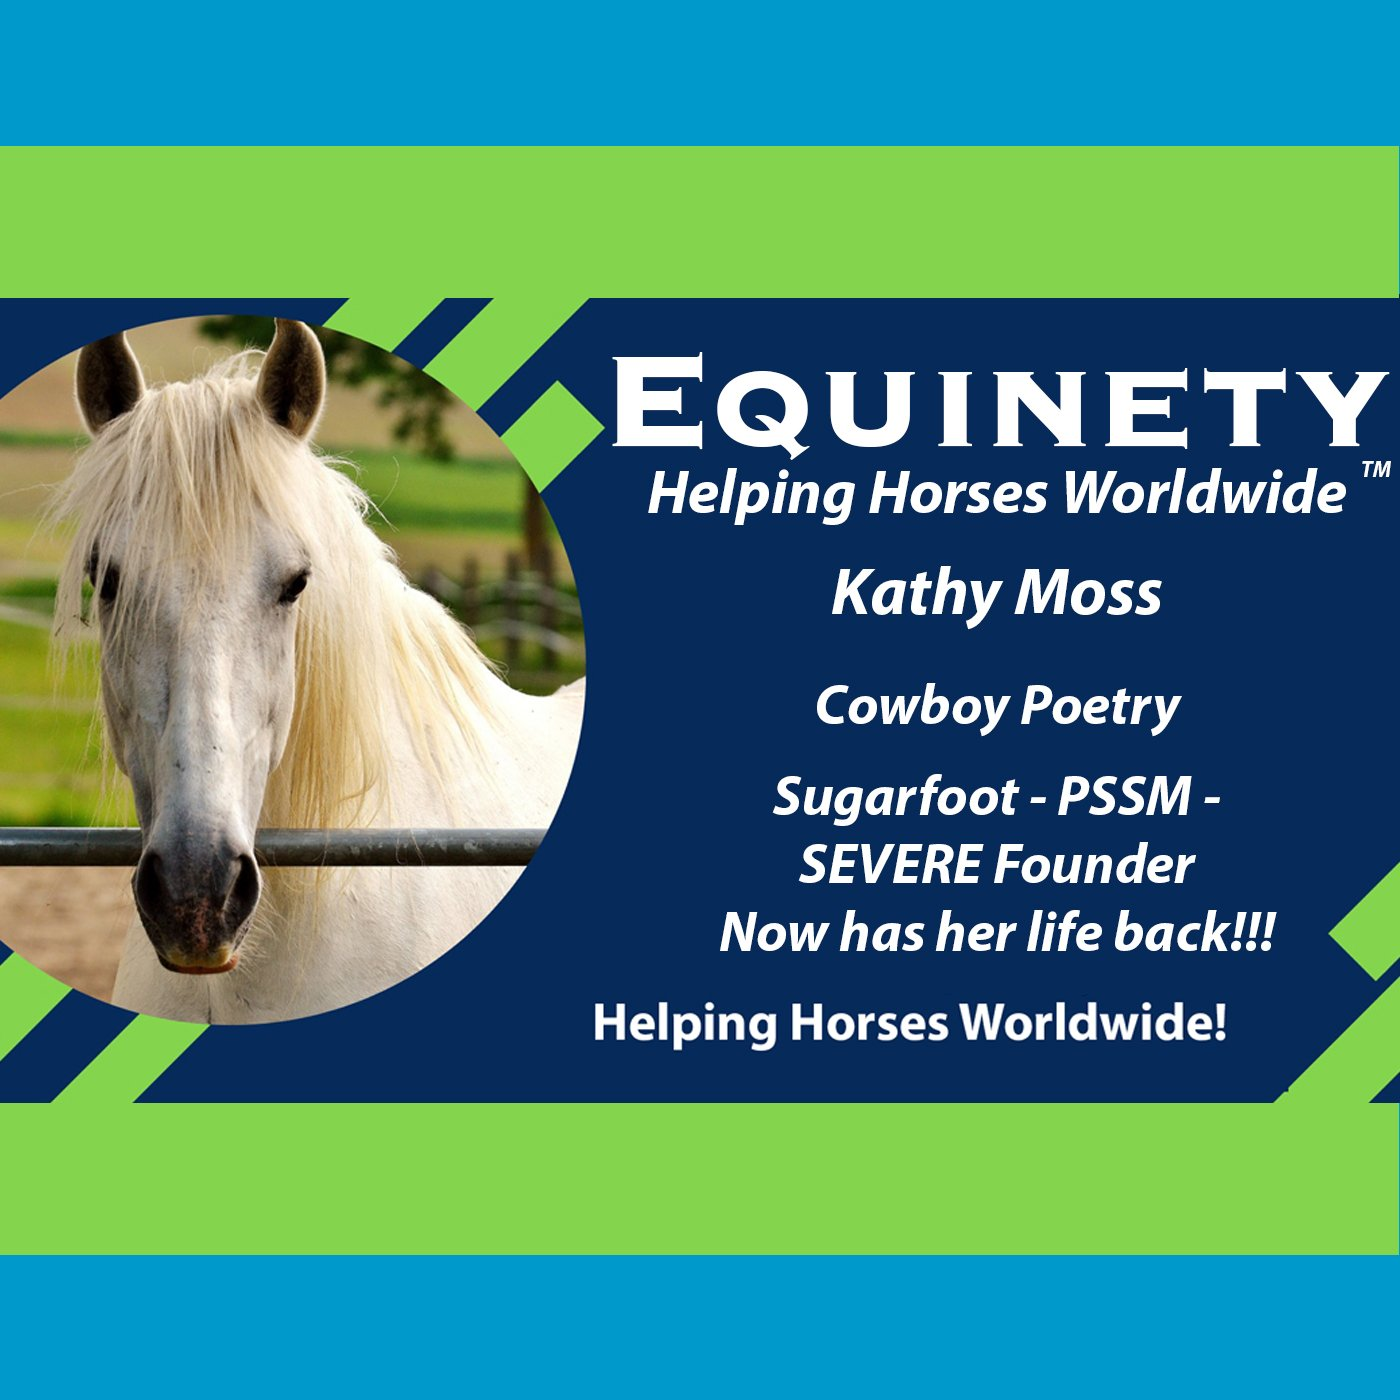 Kathy Moss - Cowboy Poetry - Severe Founder - PSSM - and now has her life back!